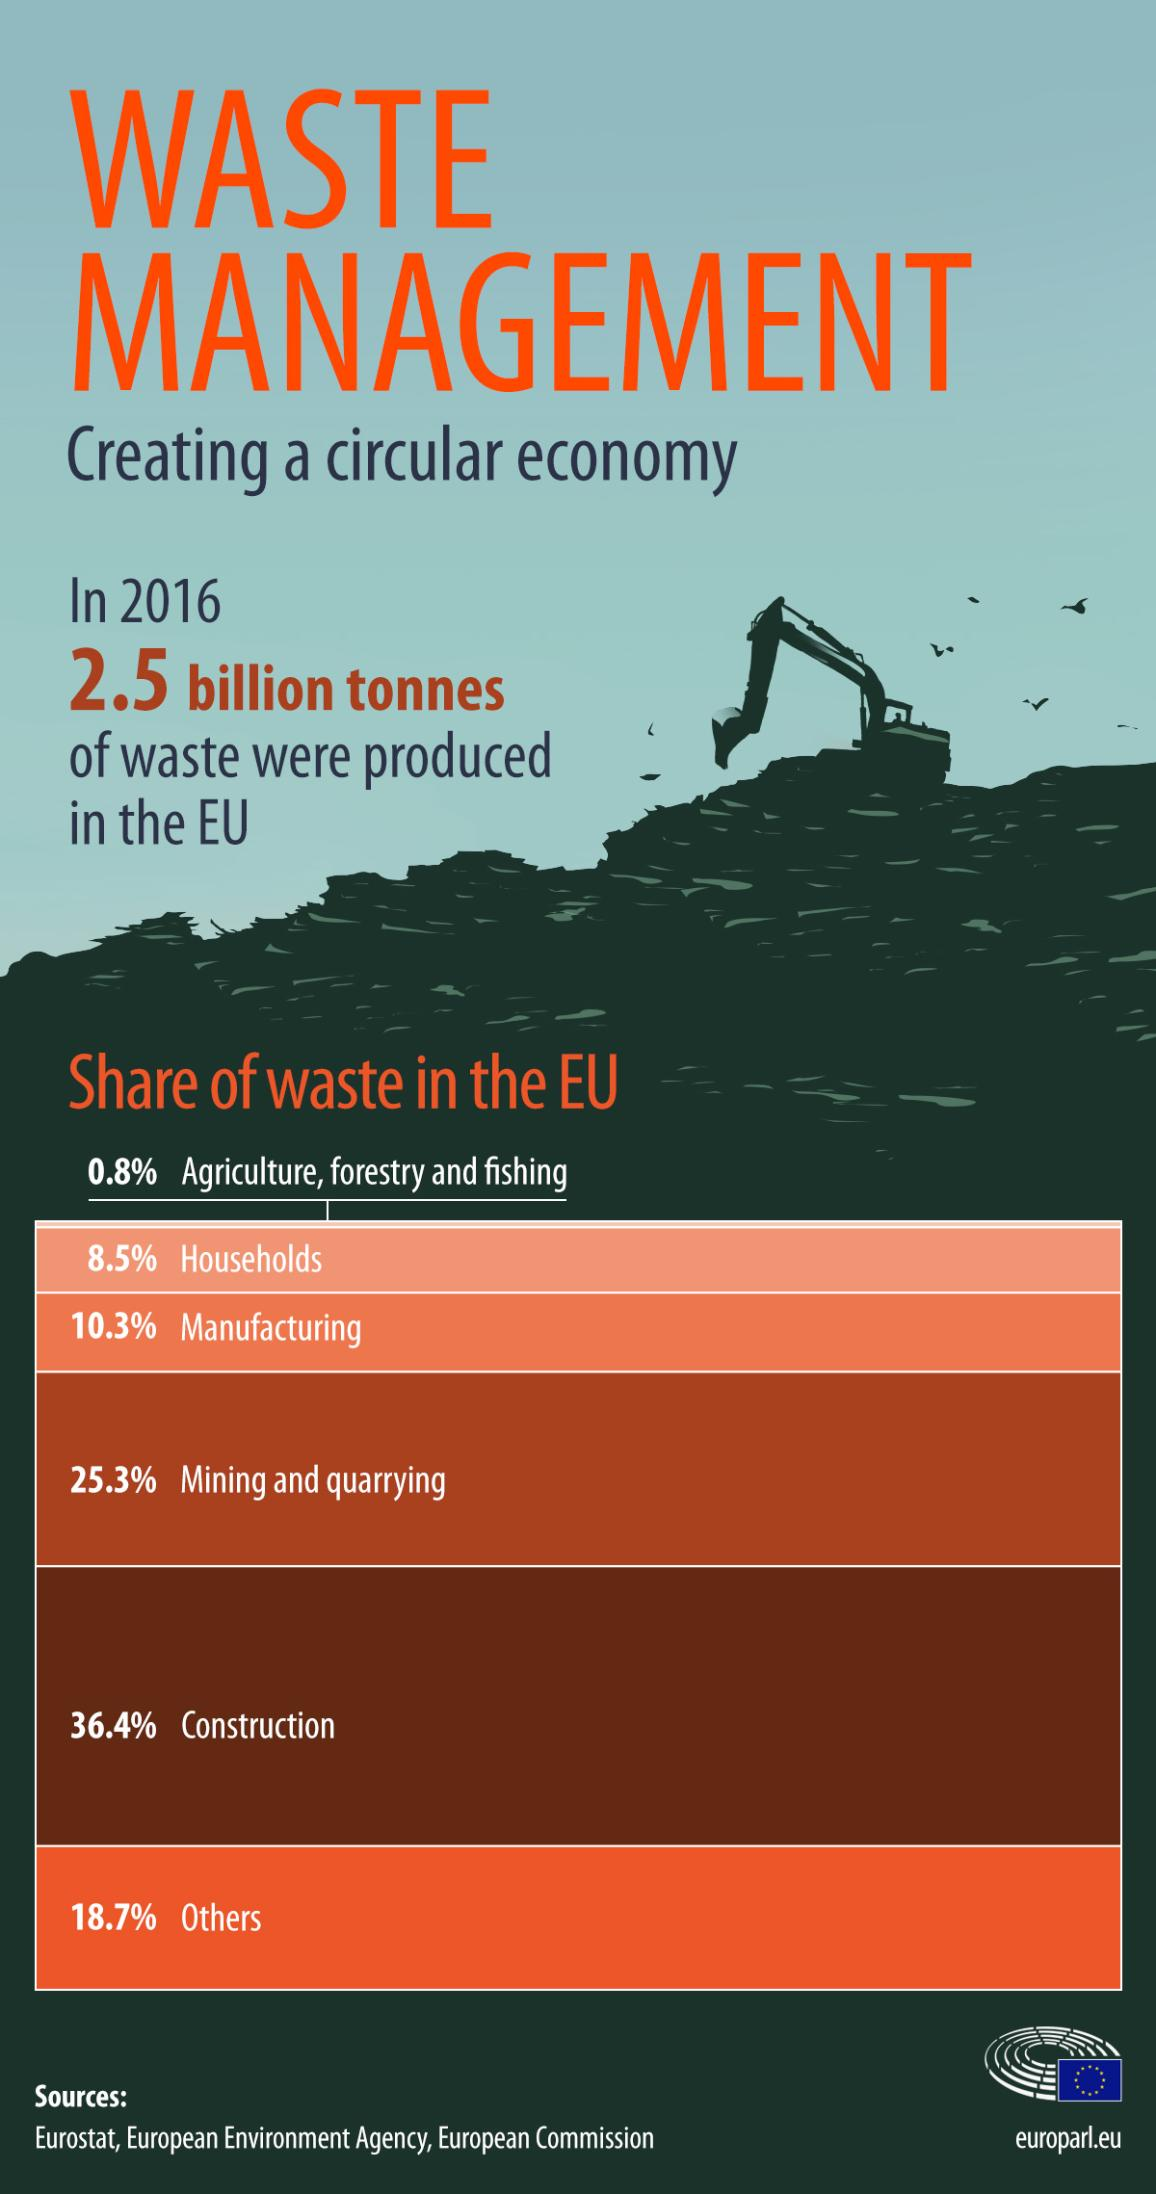 Infographic on waste management: creating a circular economy